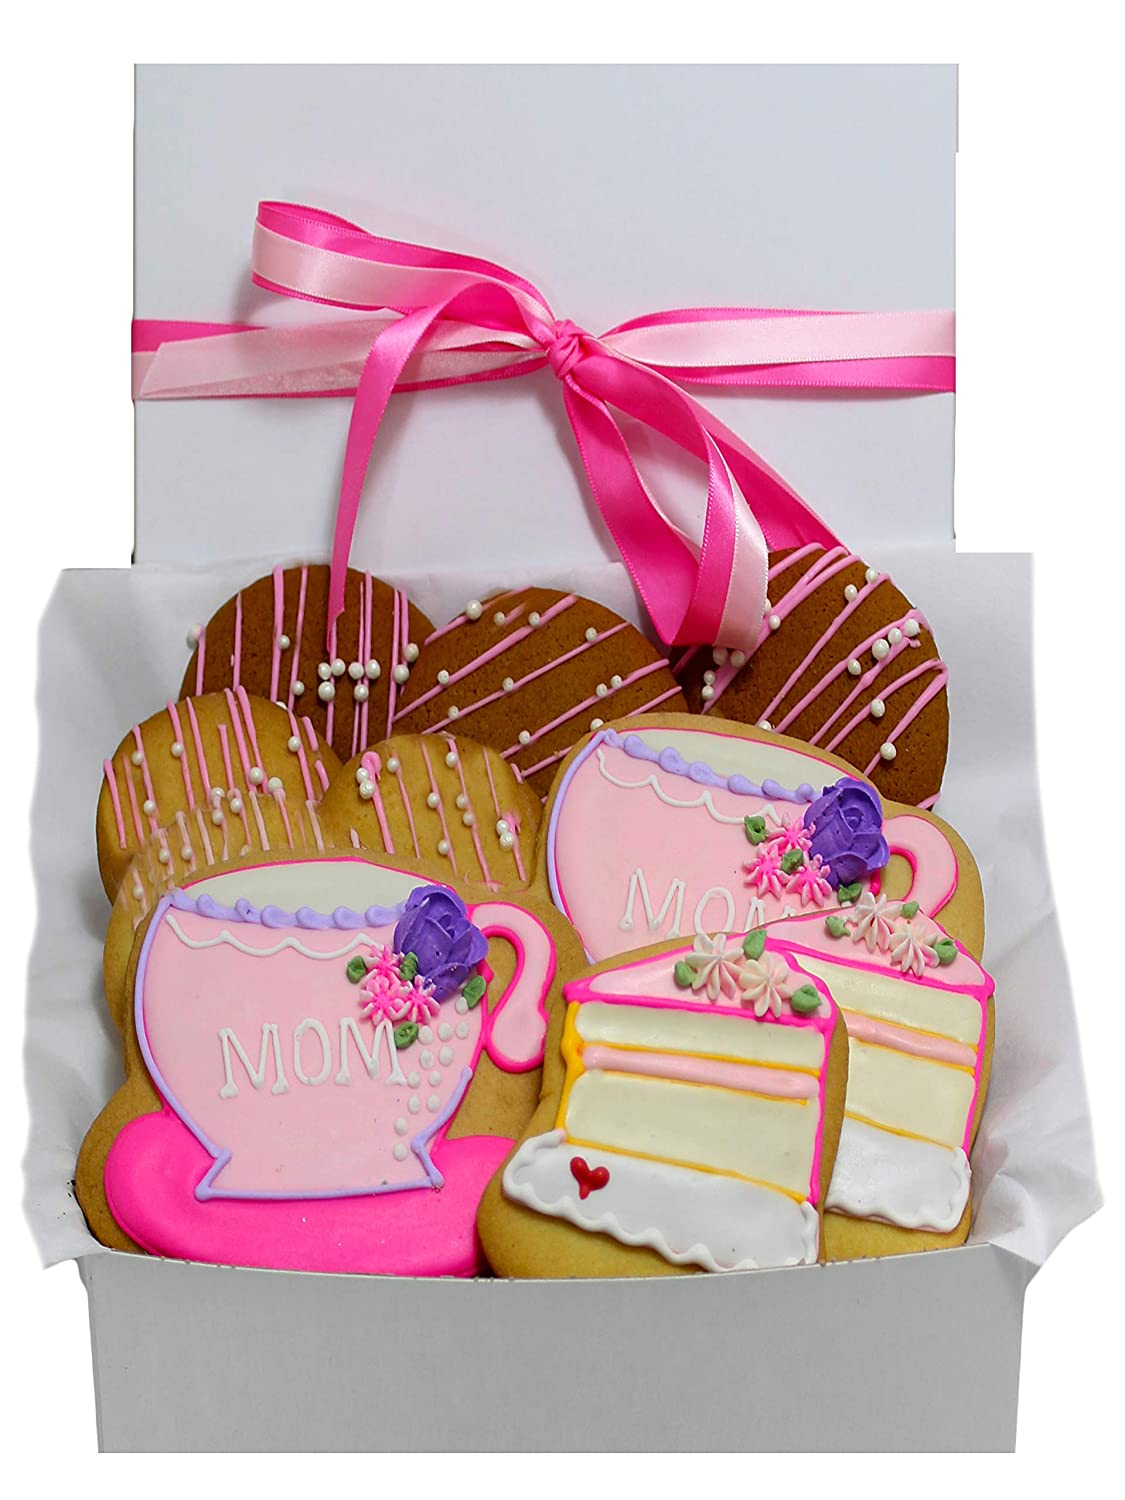 Happy Mothers Day Cookie Gift Basket Hand-Decorated Cookies, Gourmet Unique Food Gifts, Mothers Day Gifts For Mom, Mother In Law, Stepmother, Kosher, 10 Count, Prime Delivery